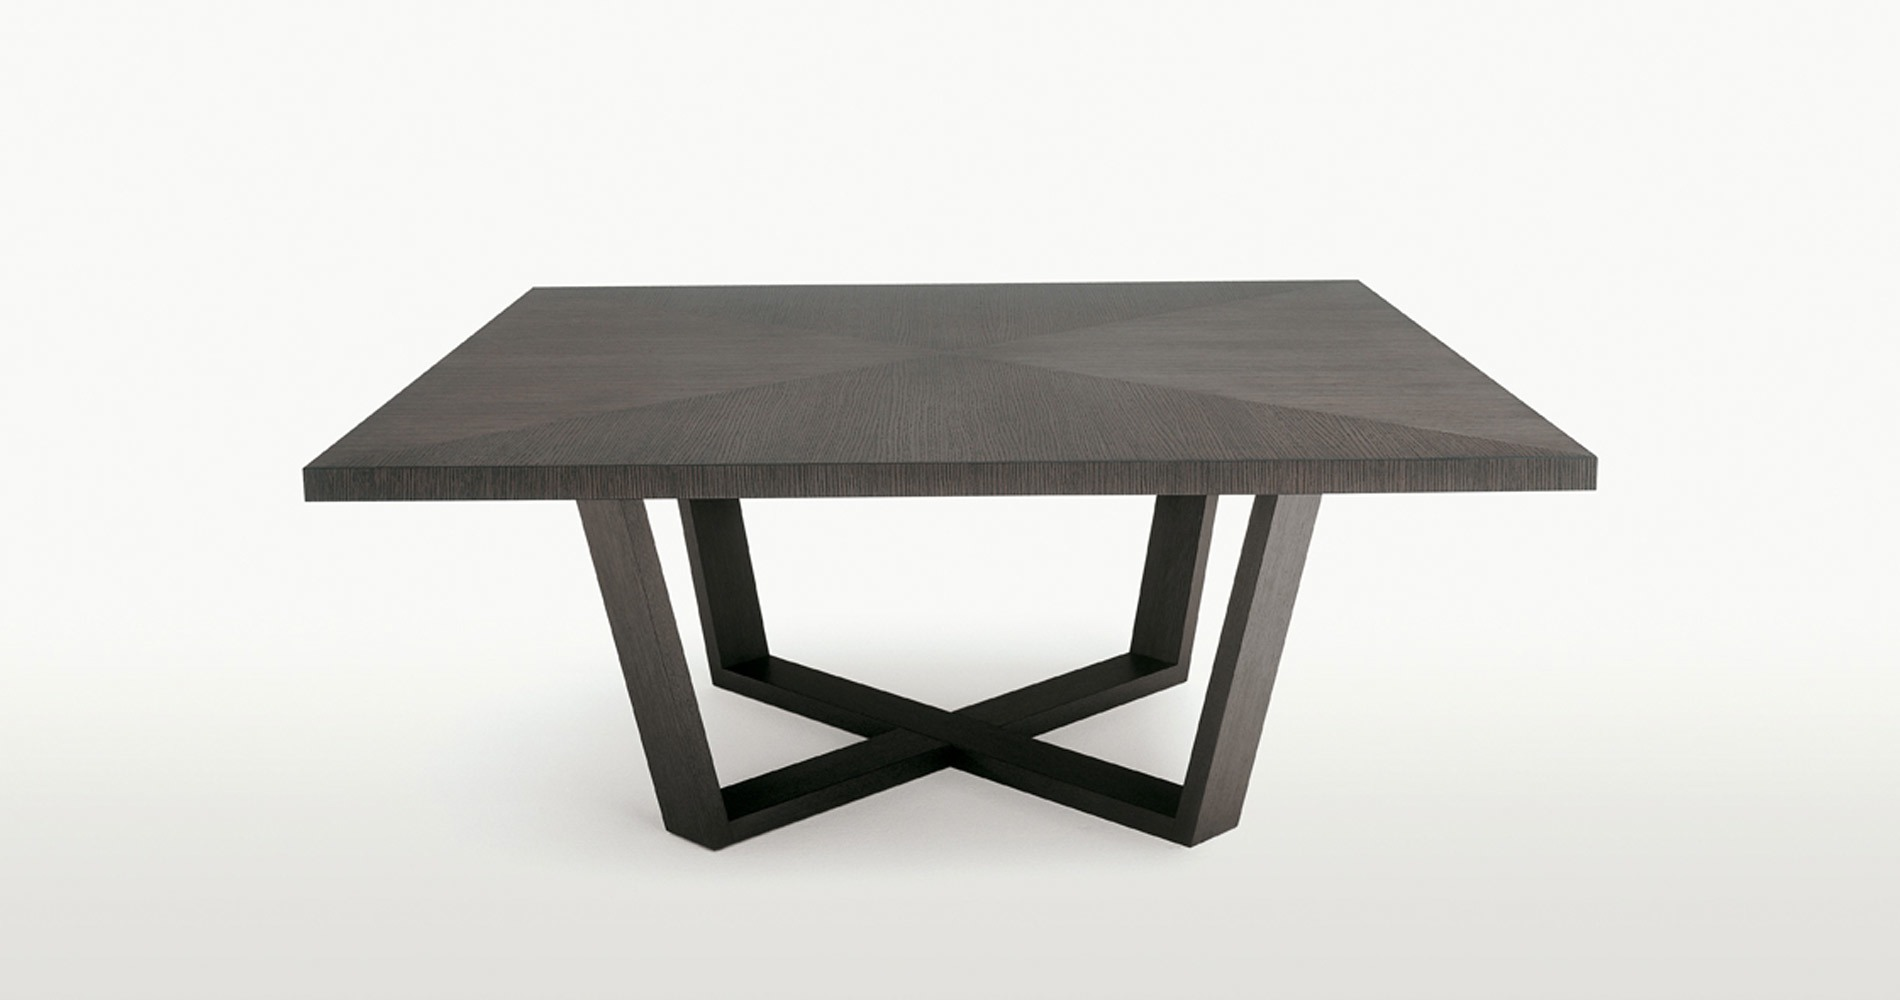 B&b Italia Maxalto Xilos Maxalto B Andb Italia Xilos Table Buy From Campbell Watson Uk